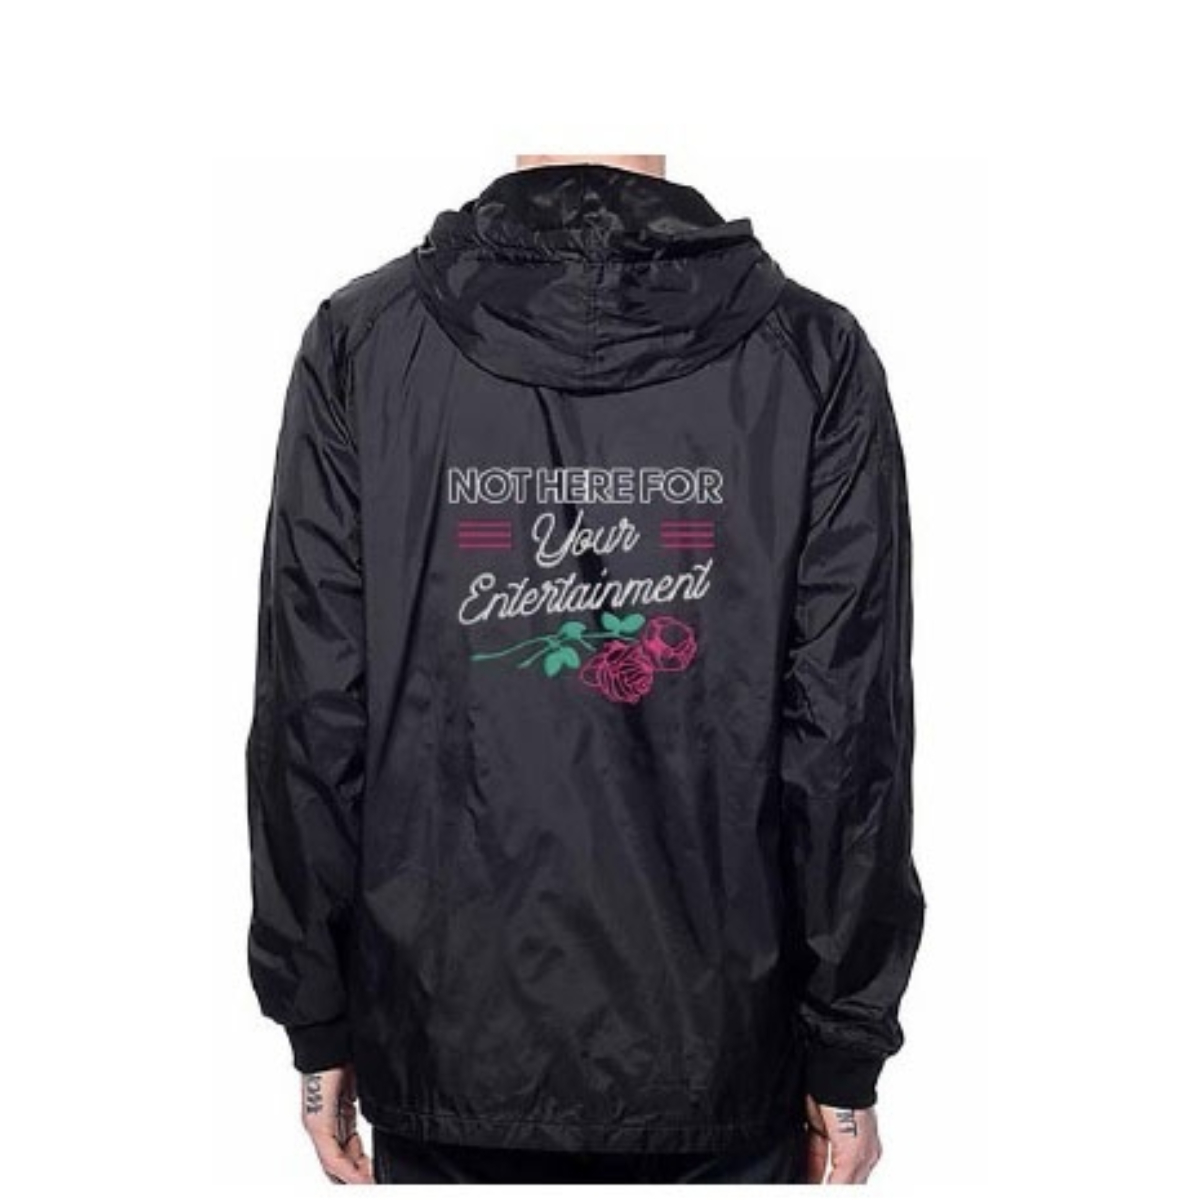 Embroidered Black Tech Jacket